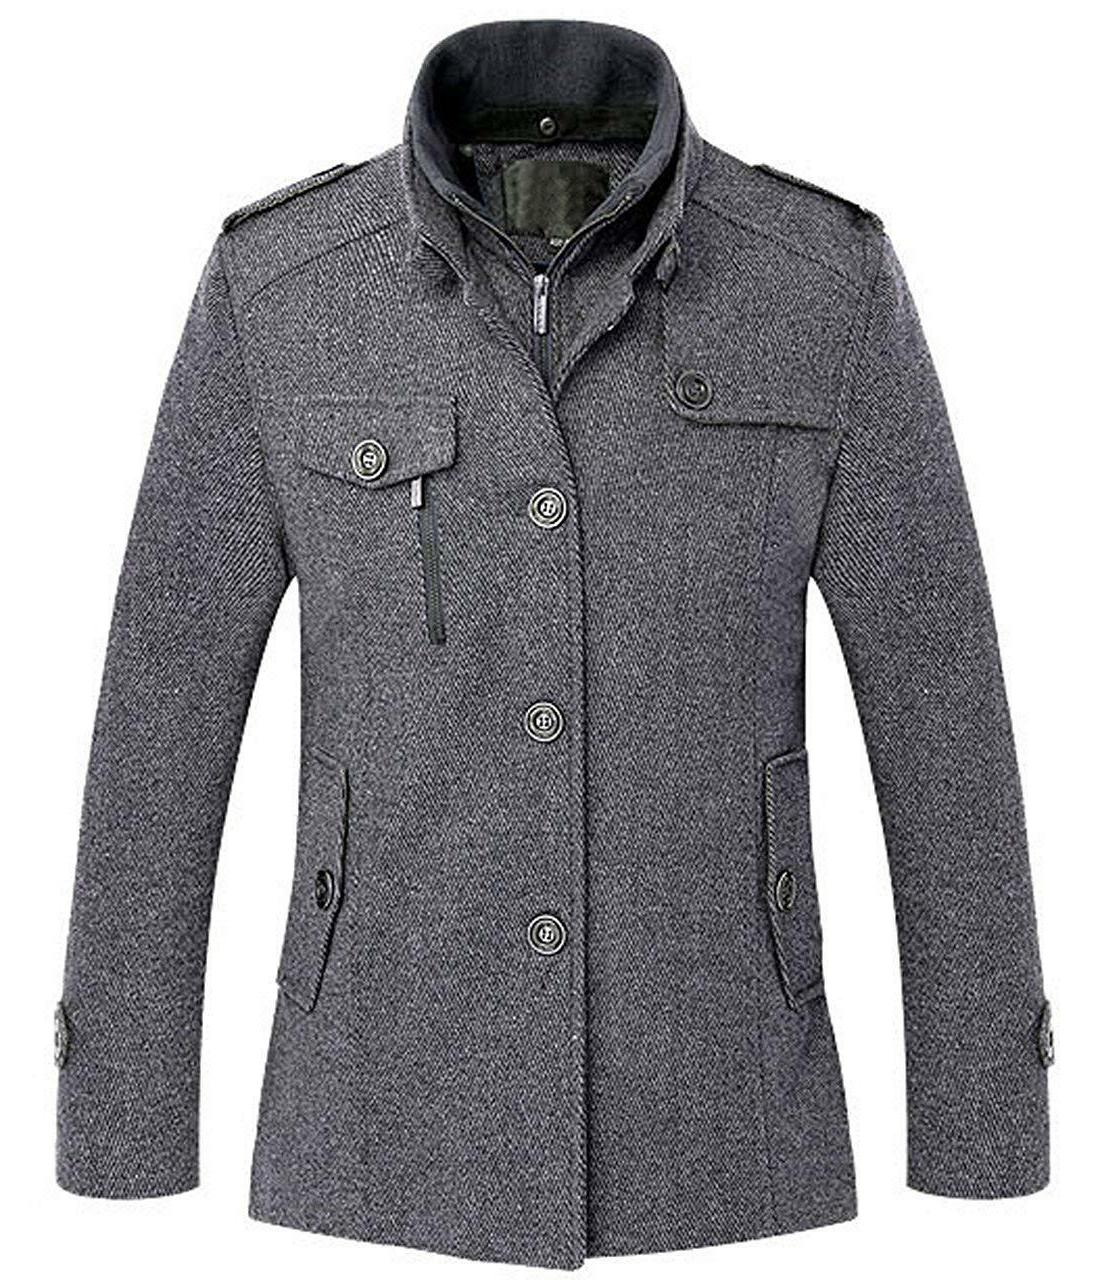 Chouyatou Wool Single Breasted Military Peacoat